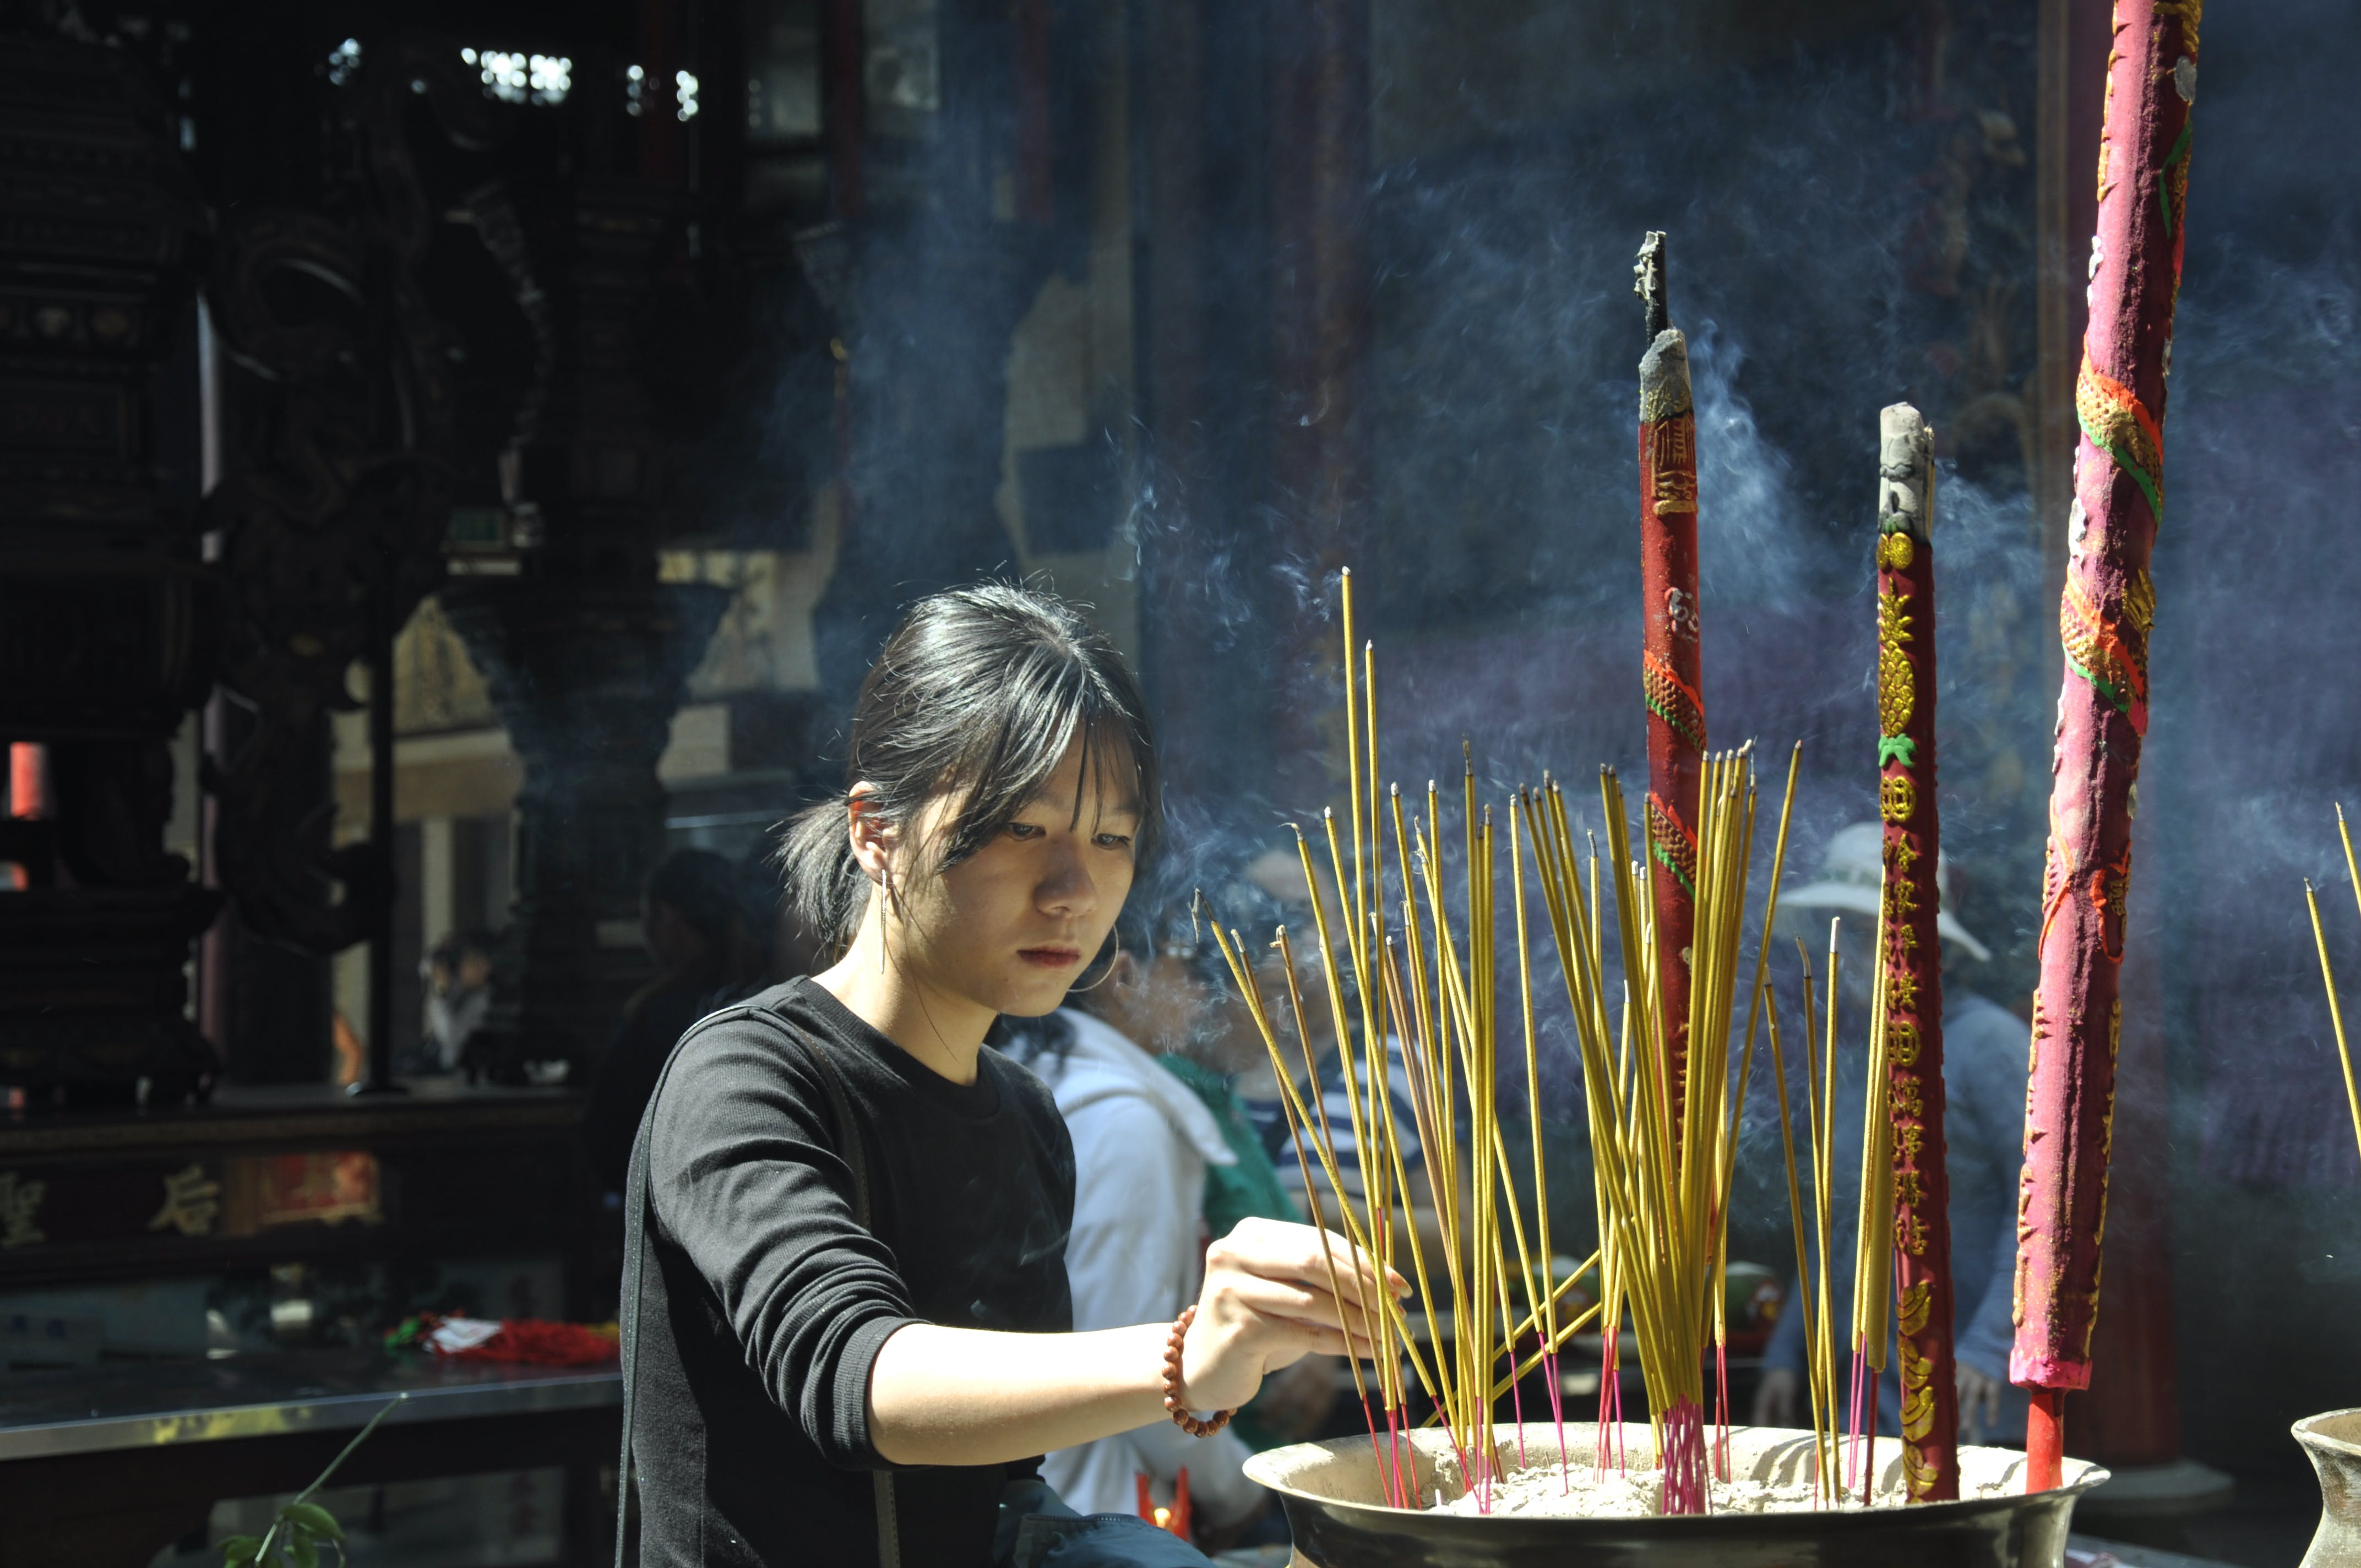 Woman Lighting Incense Sticks